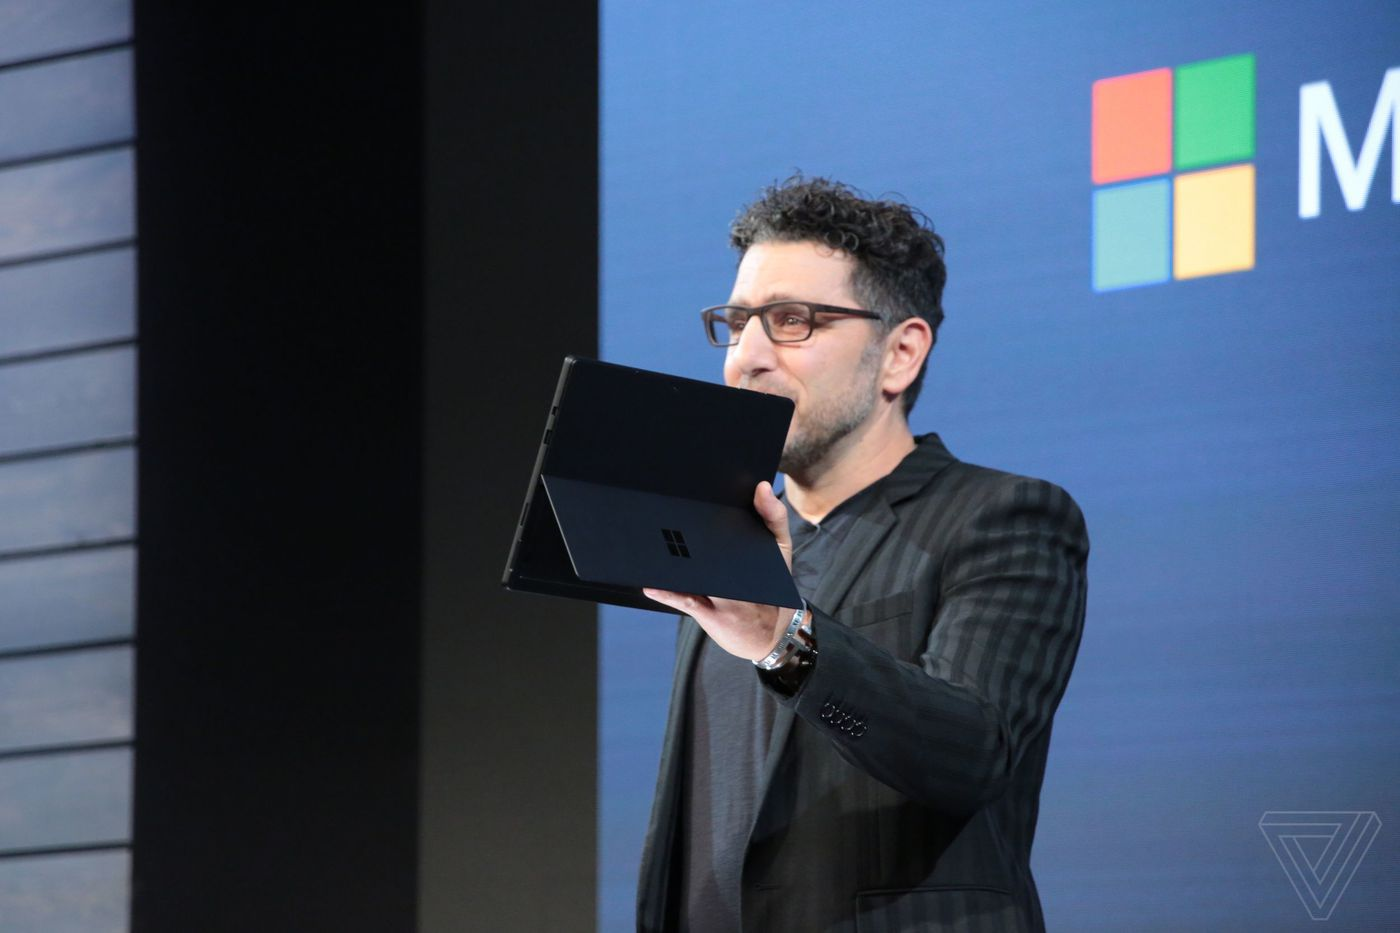 Microsoft unveils Surface Pro 6 with new matte black finish and quad-core processors